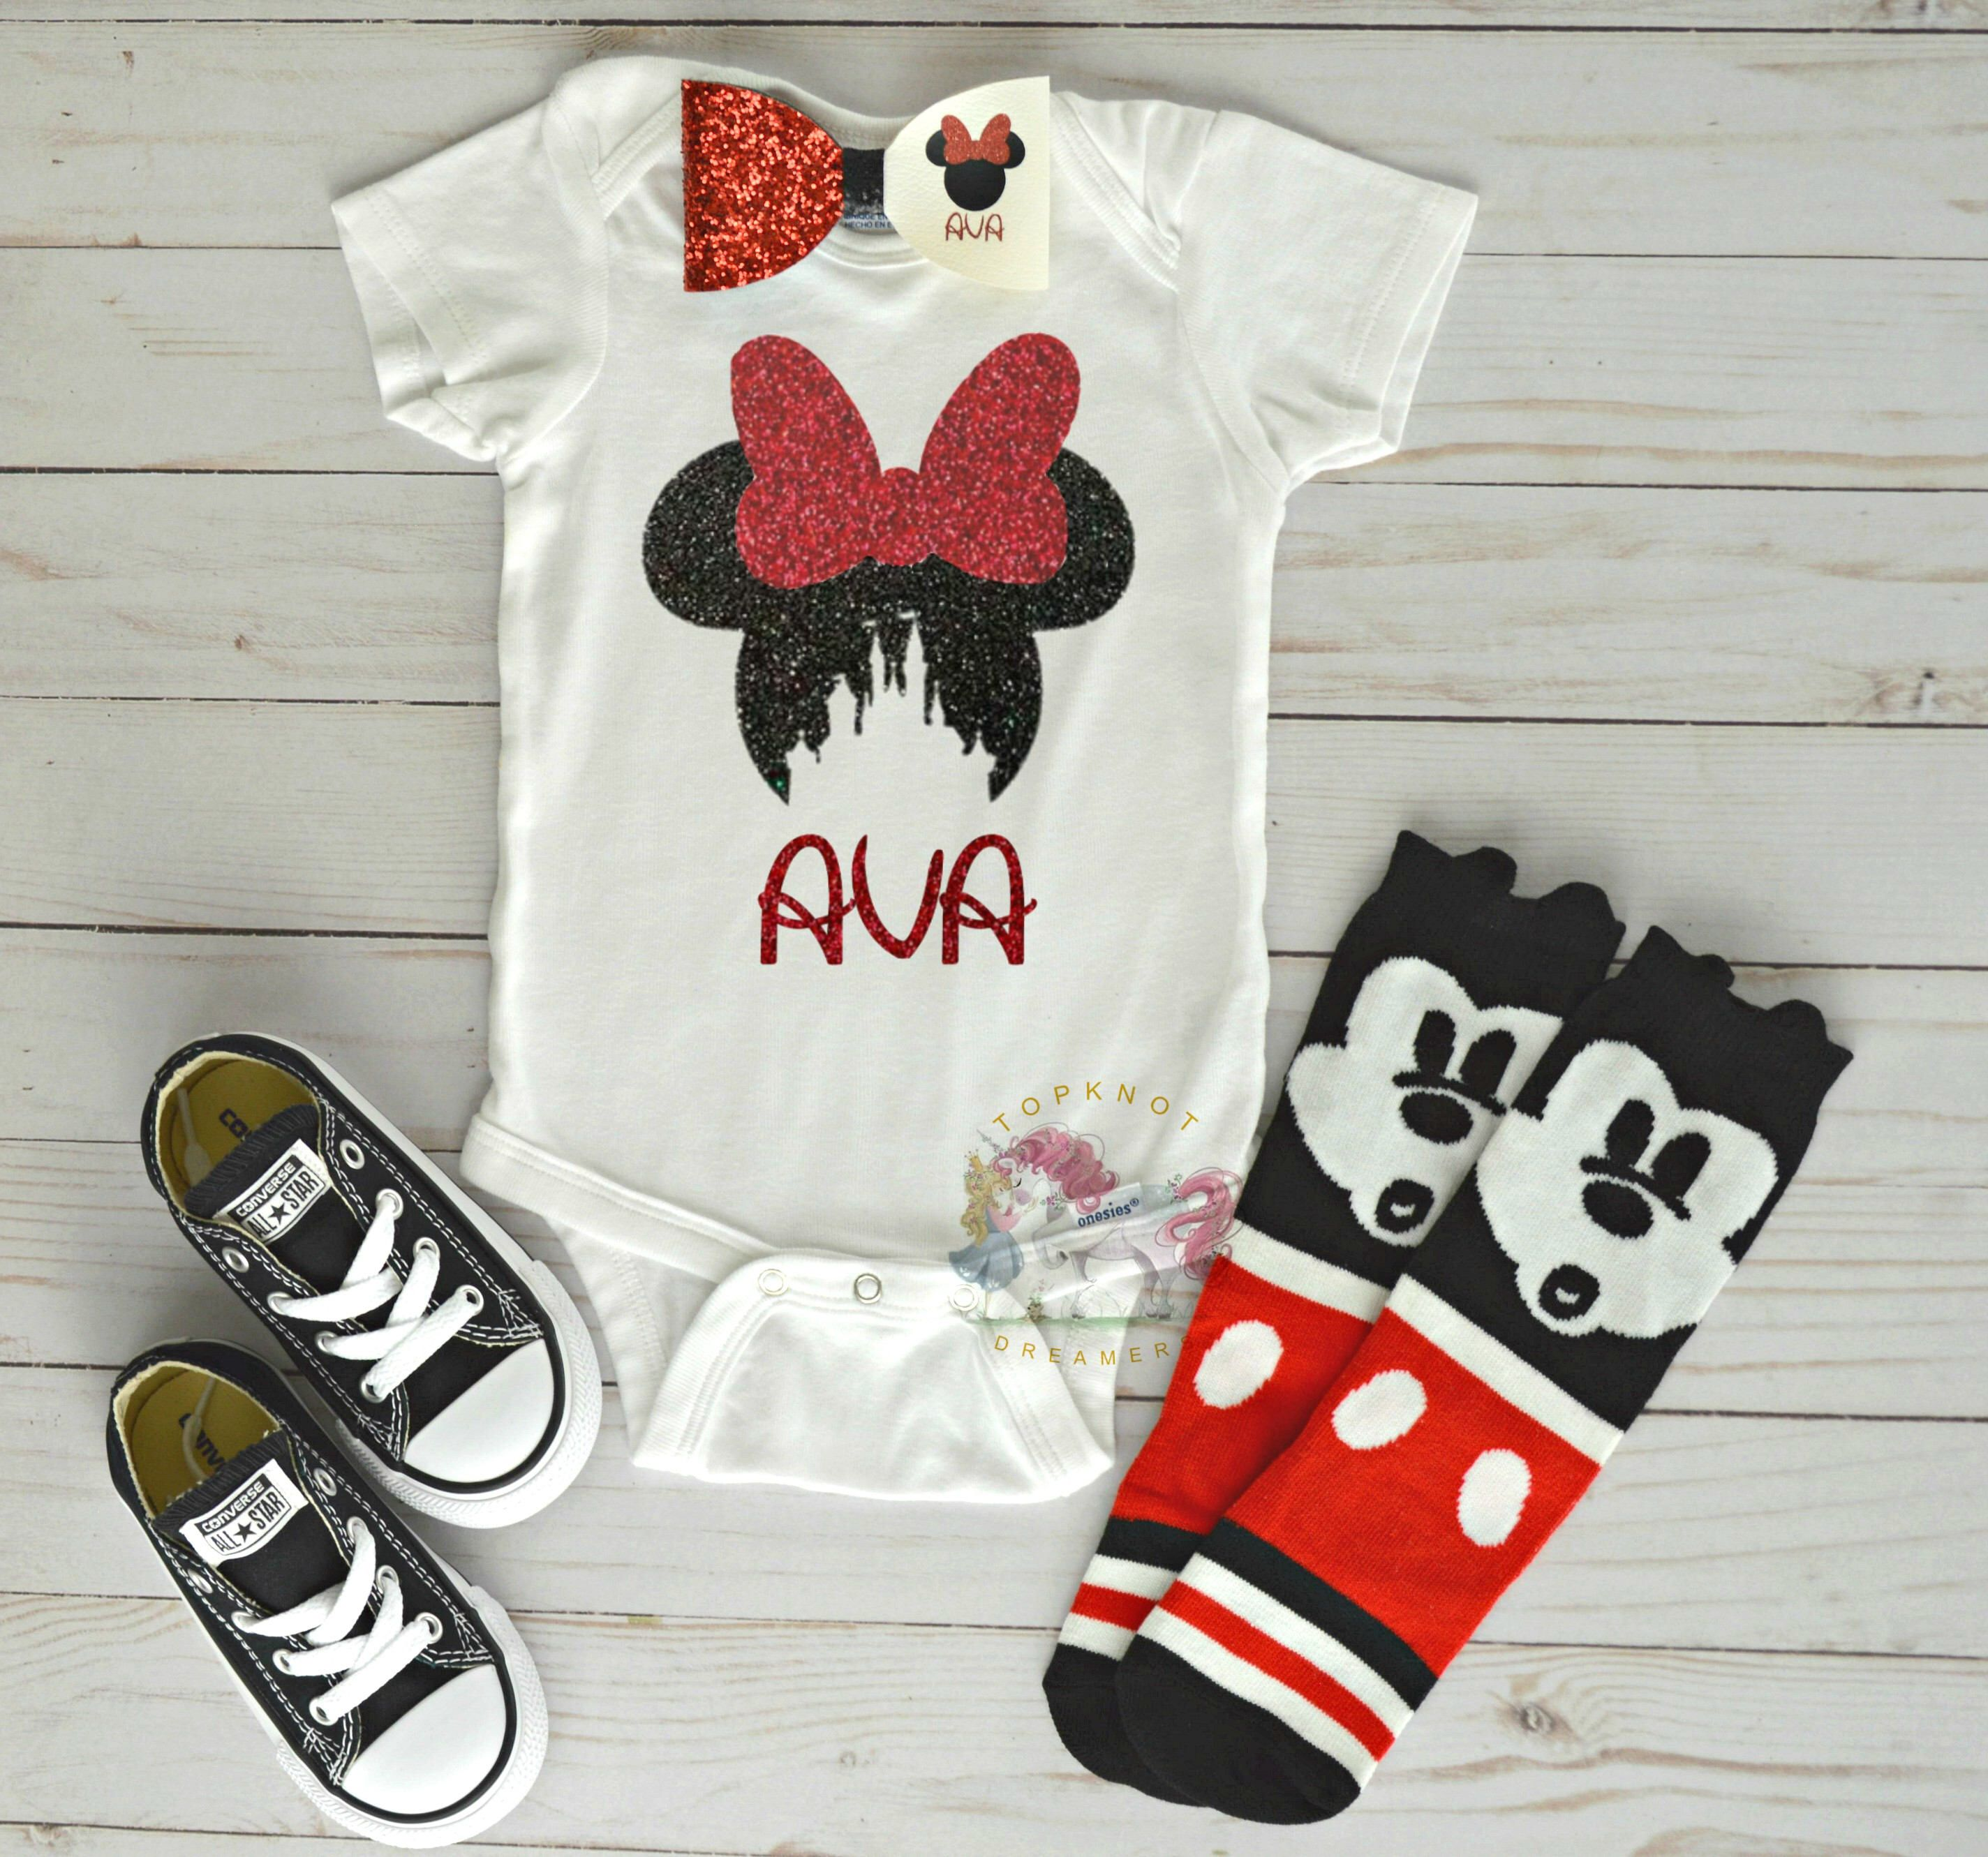 32cdf4442 Personalized Minnie Mouse Onesie, Minnie Mouse Shirt, Disney Onesie, Disney  Castle Onesie, Minnie Outfit, Mickey Socks, Disney Vacation